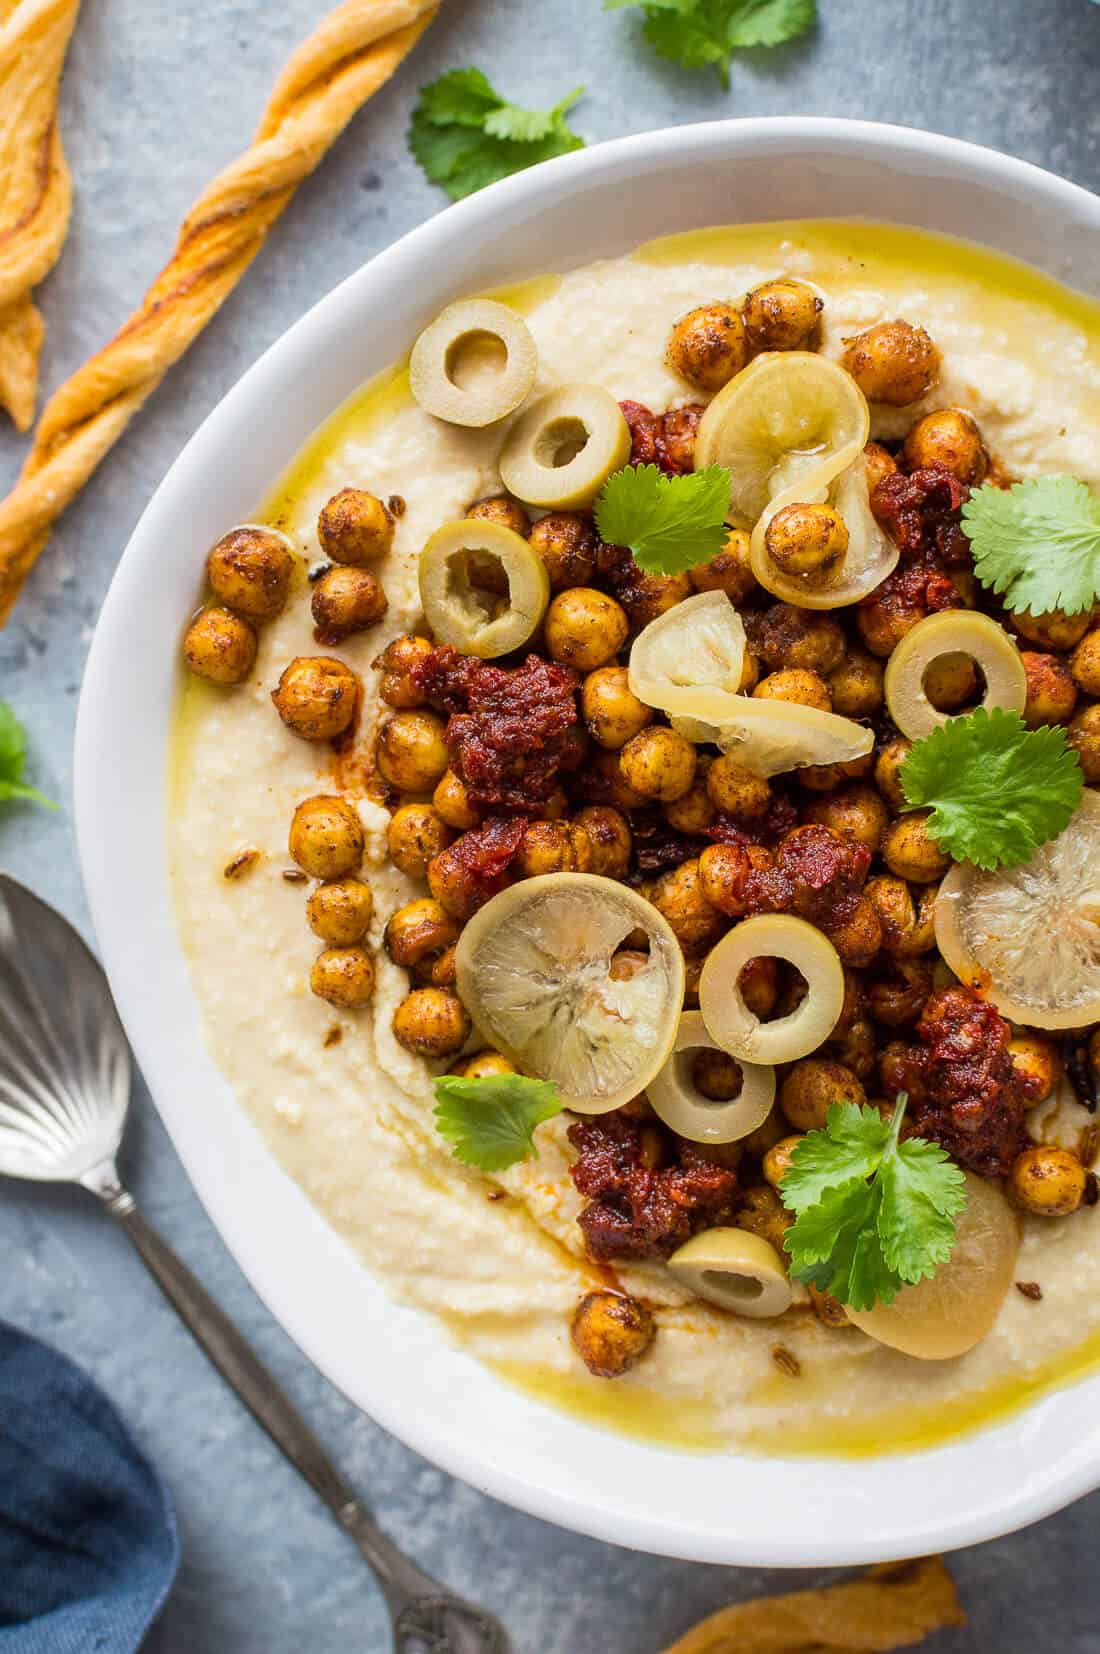 close up of loaded hummus bowl with spiced crispy roasted chickpeas, preserved lemon and olives